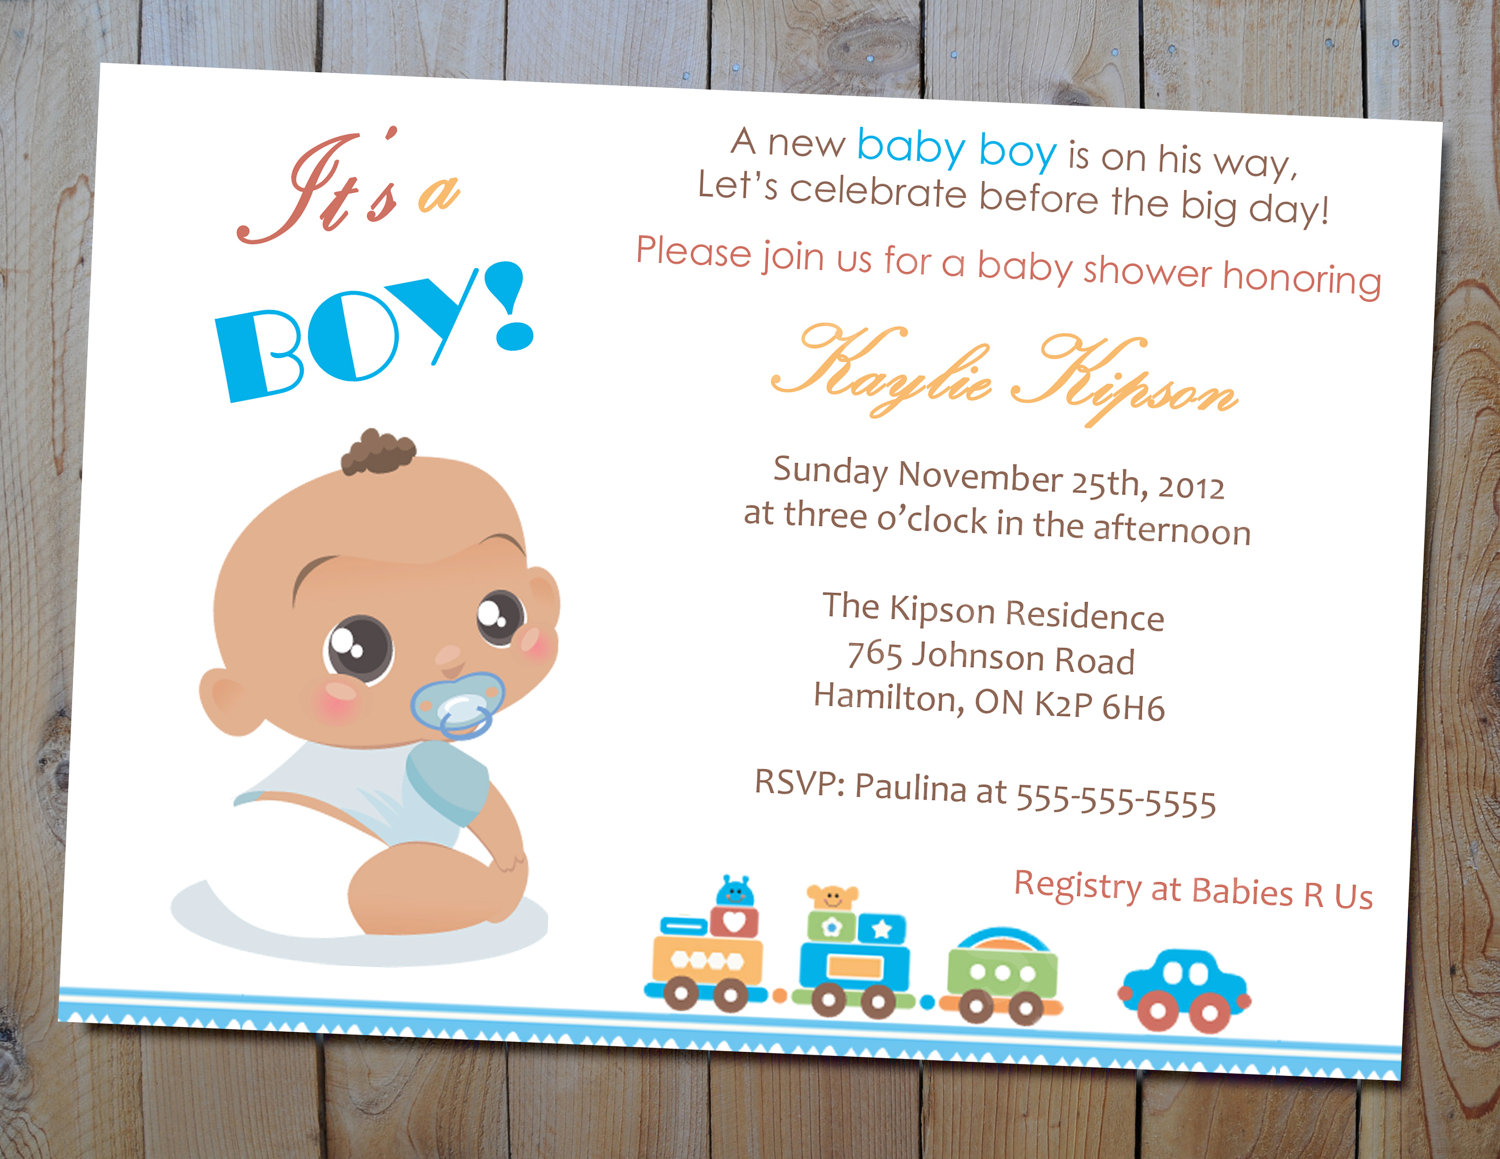 Amazing Baby Shower Invitations For Boys - Connu.co for New Baby Boy Baby Shower Invitations